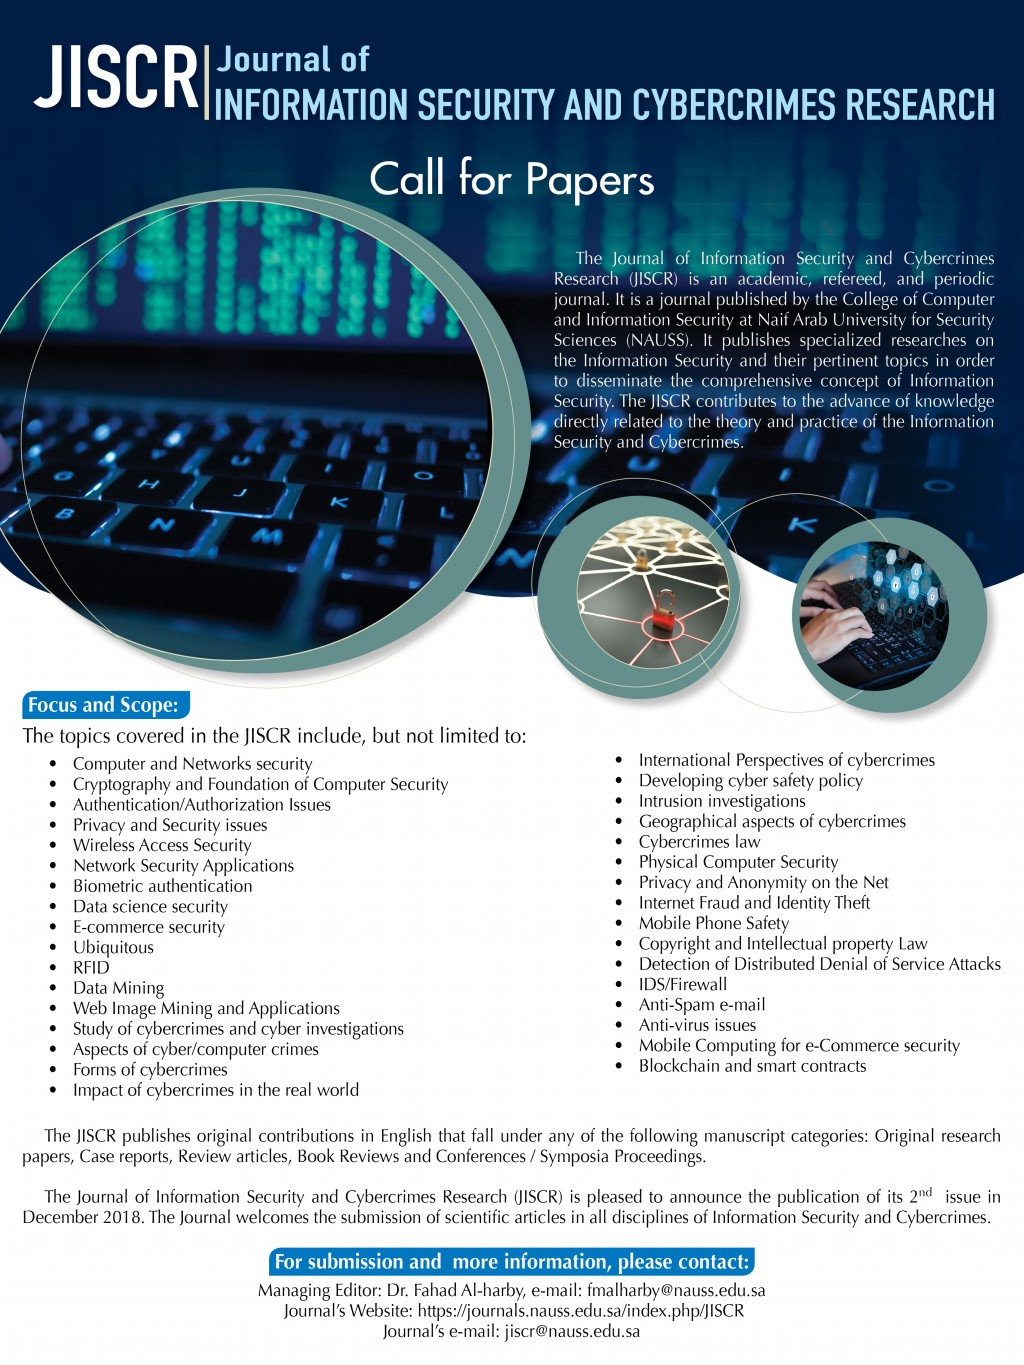 020 Research Paper Papers On Cyber Security Call For December Wonderful In E Commerce Topics Pdf Large